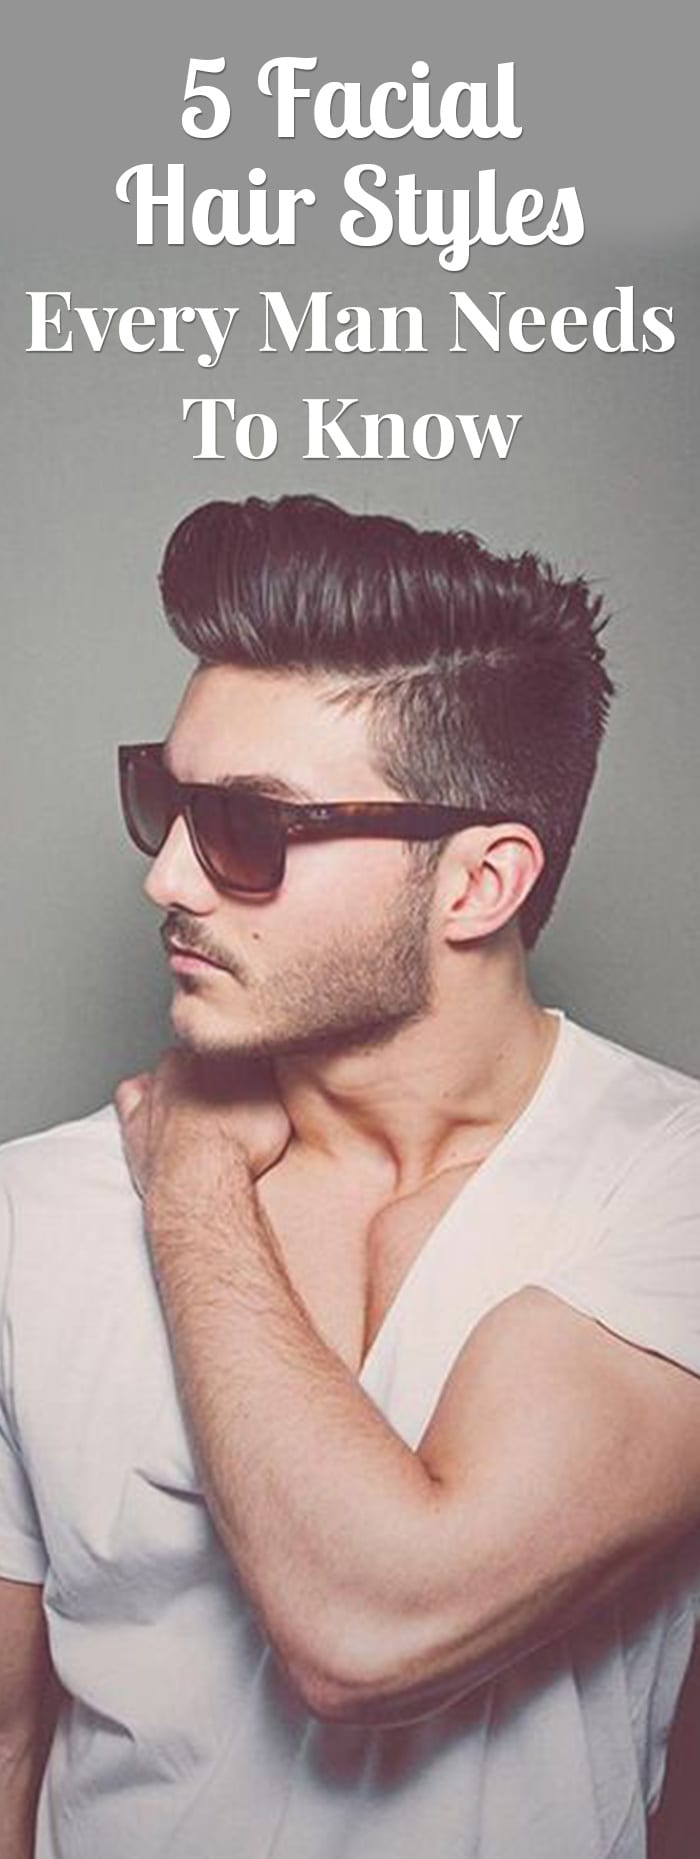 5 Facial Hair Styles Every Man Needs To Know